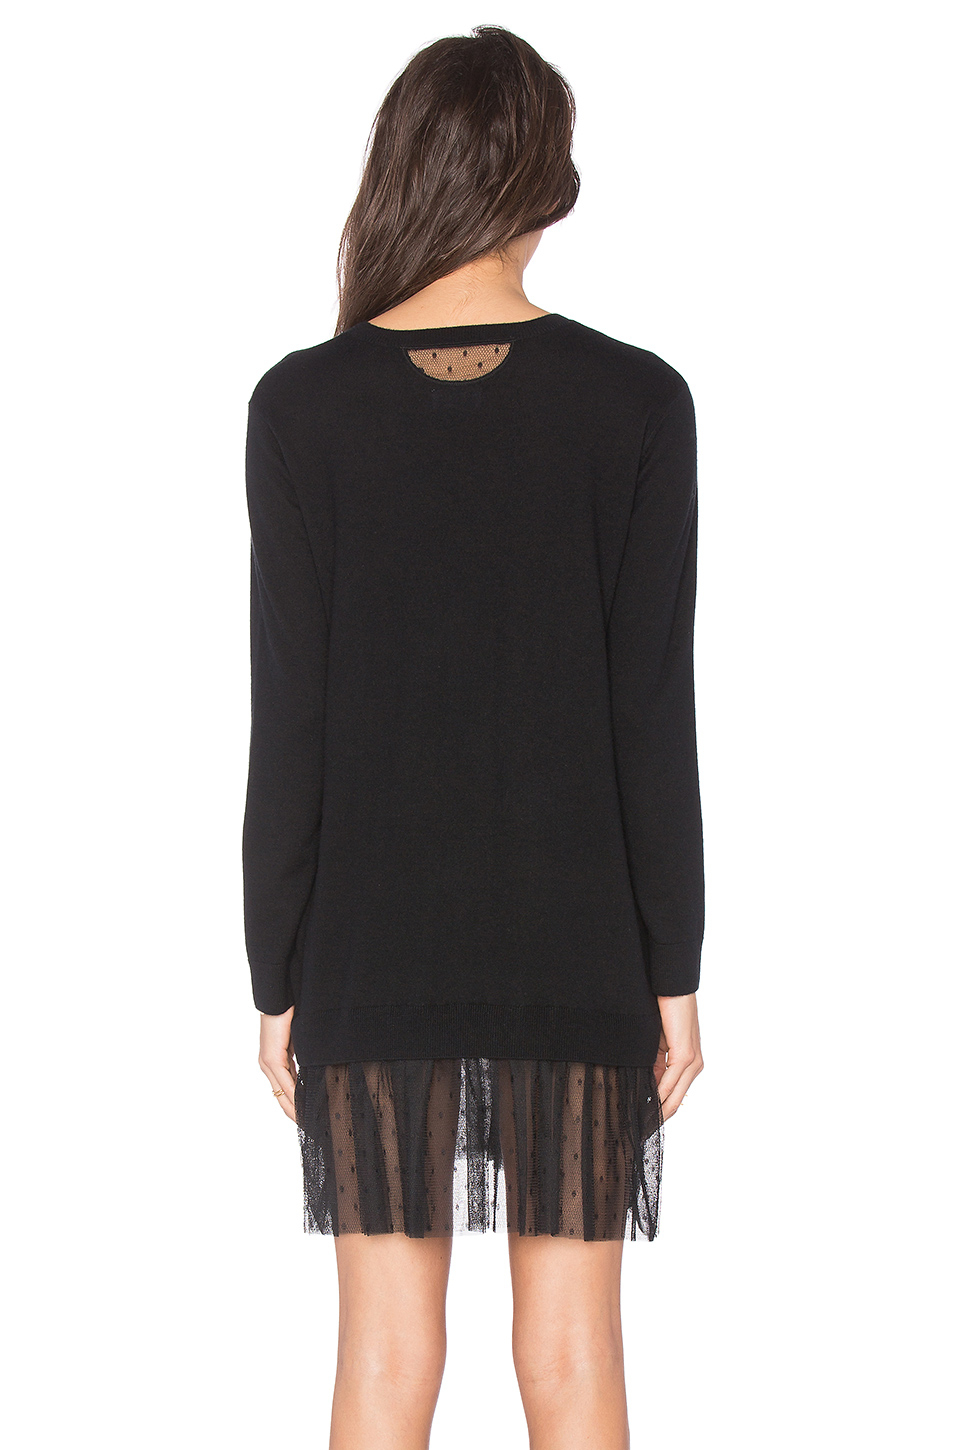 Red valentino Lace Sweater Dress in Black | Lyst